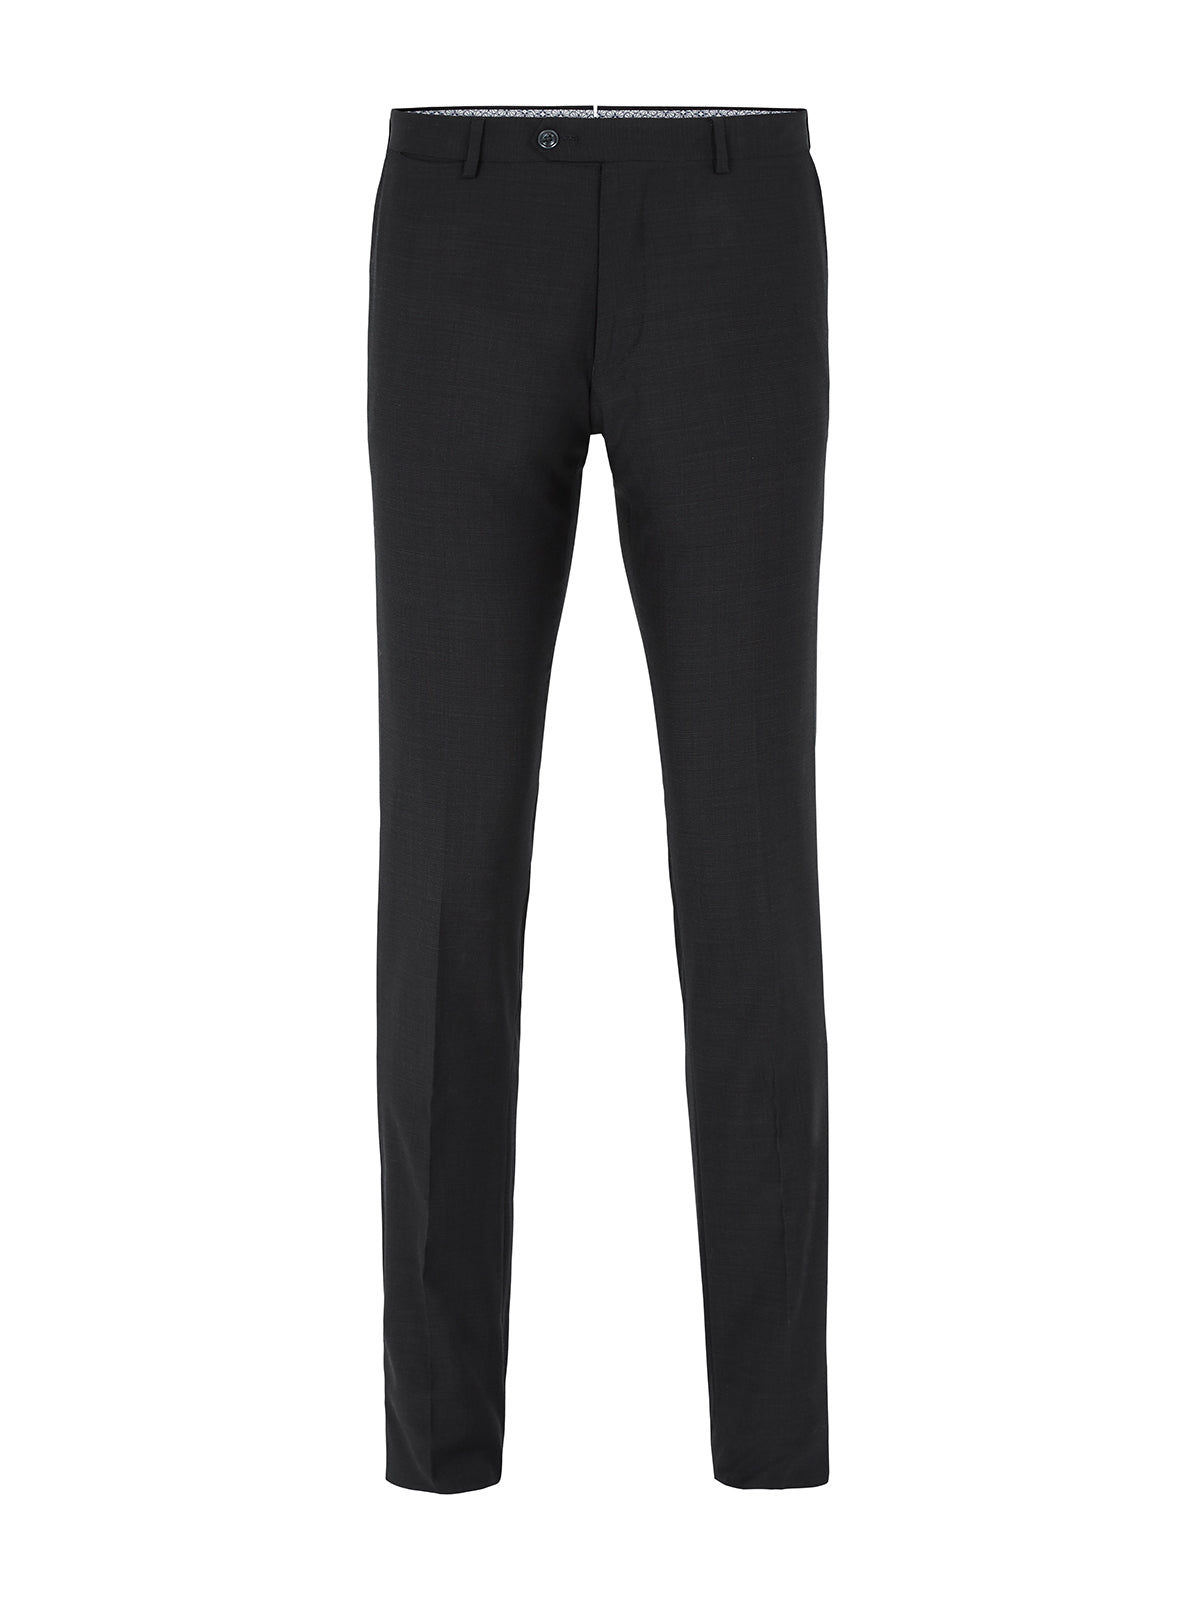 AUDEN WOOL TROUSERS CHARCOAL